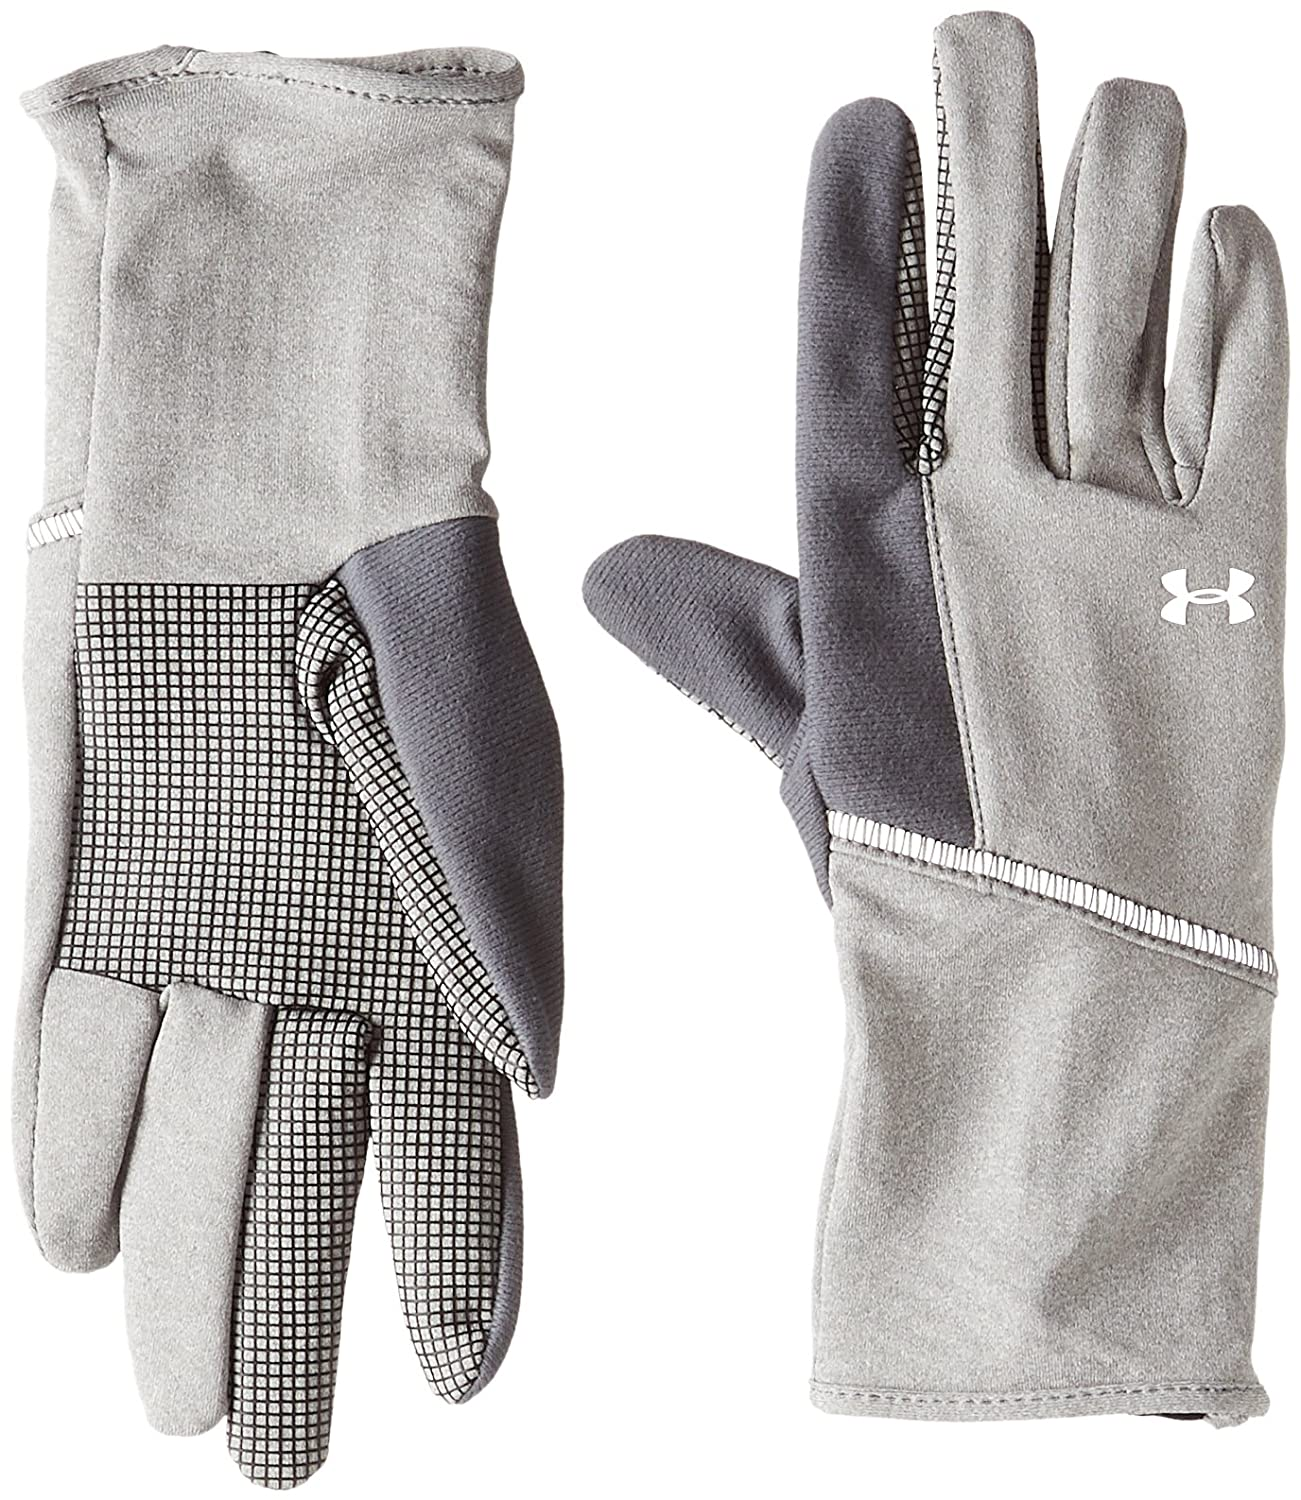 Under Armour Women's ColdGear Infrared Run Liner Gloves Under Armour Accessories 1299890